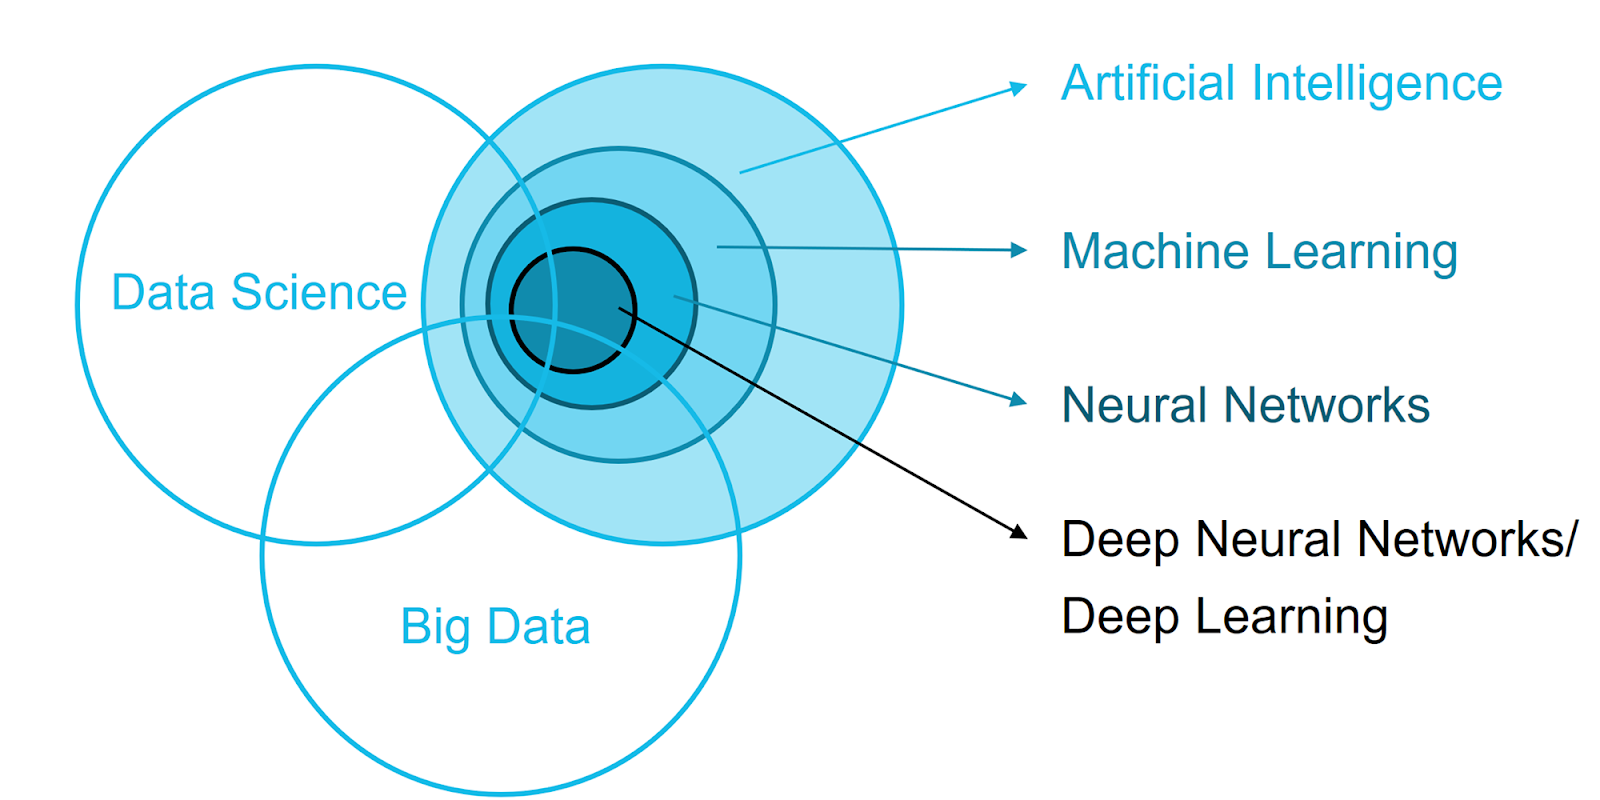 Image depicts a venn diagram that compares artificial intelligence, machine learning, neural networks, deep learning, big data and data science.